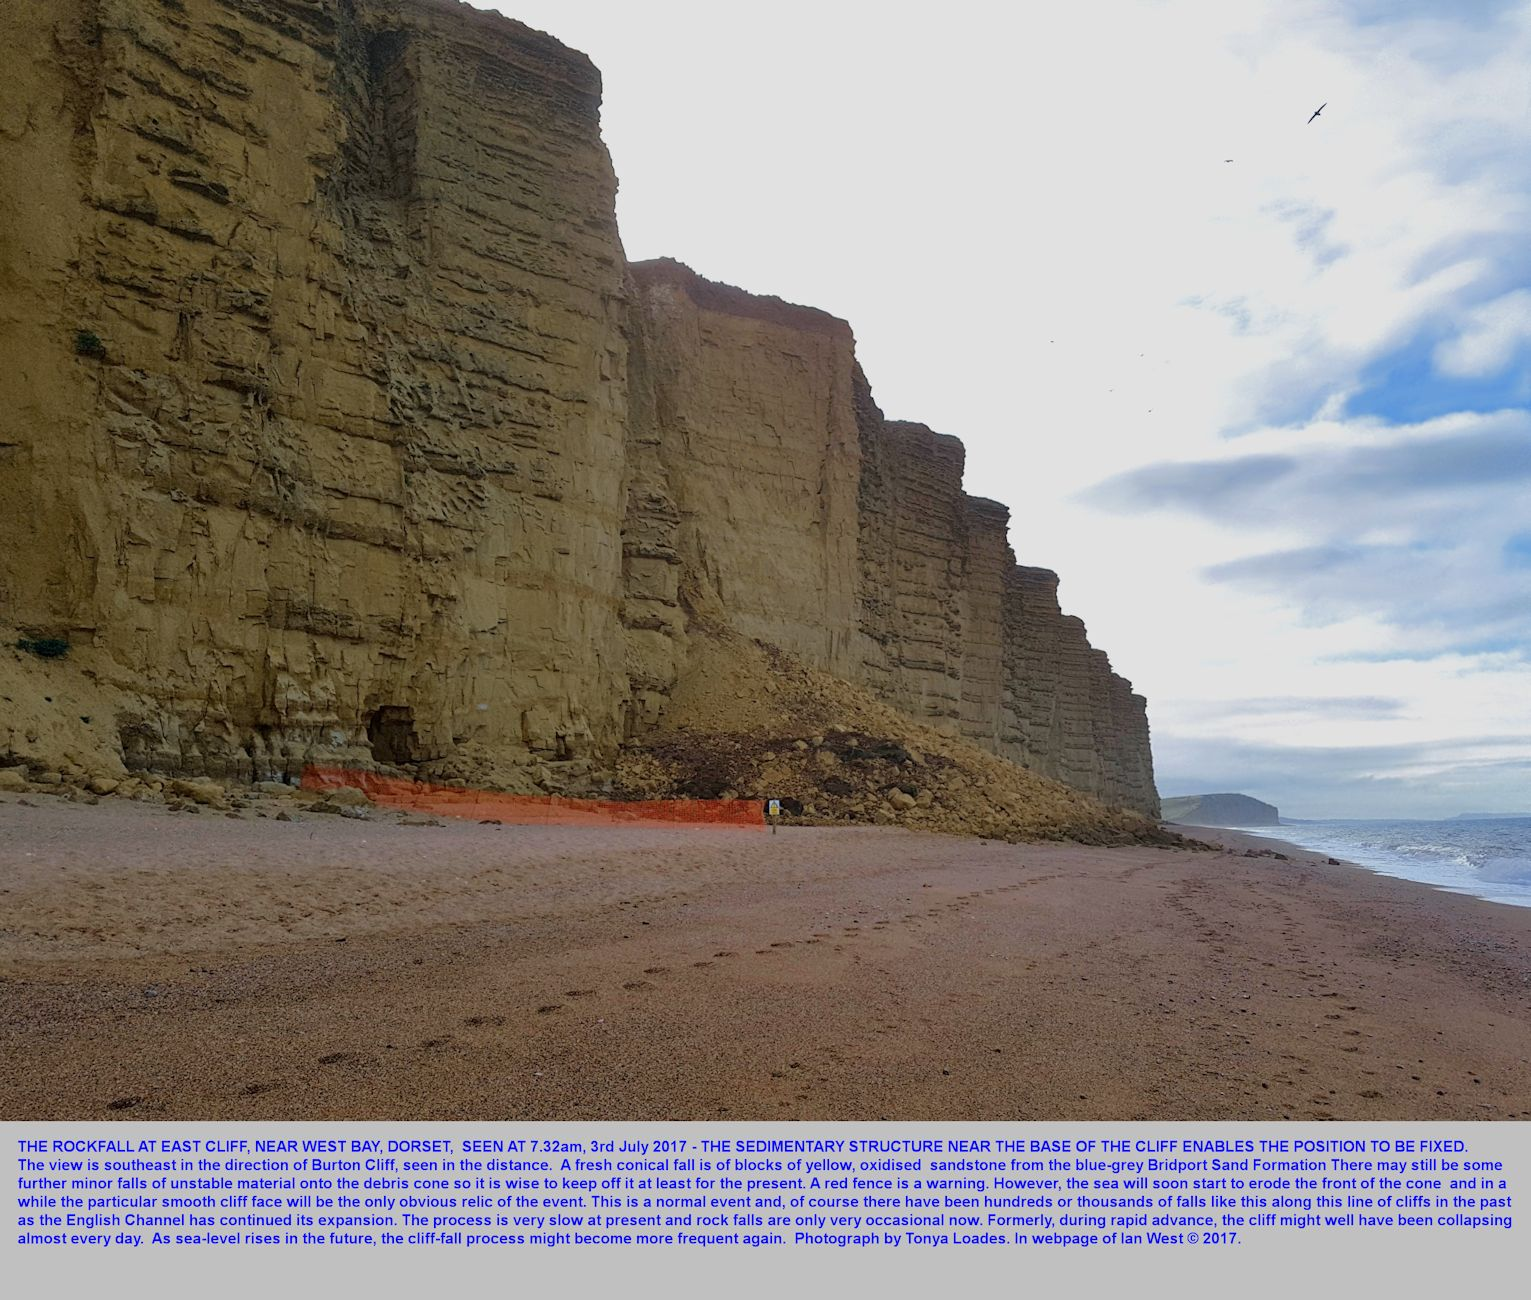 An usually large rock fall from the Bridport Sand Formation (Lias) of East Cliff, West Bay, Bridport, Dorset, as seen on the 3rd July 2017 by Tonya Loades